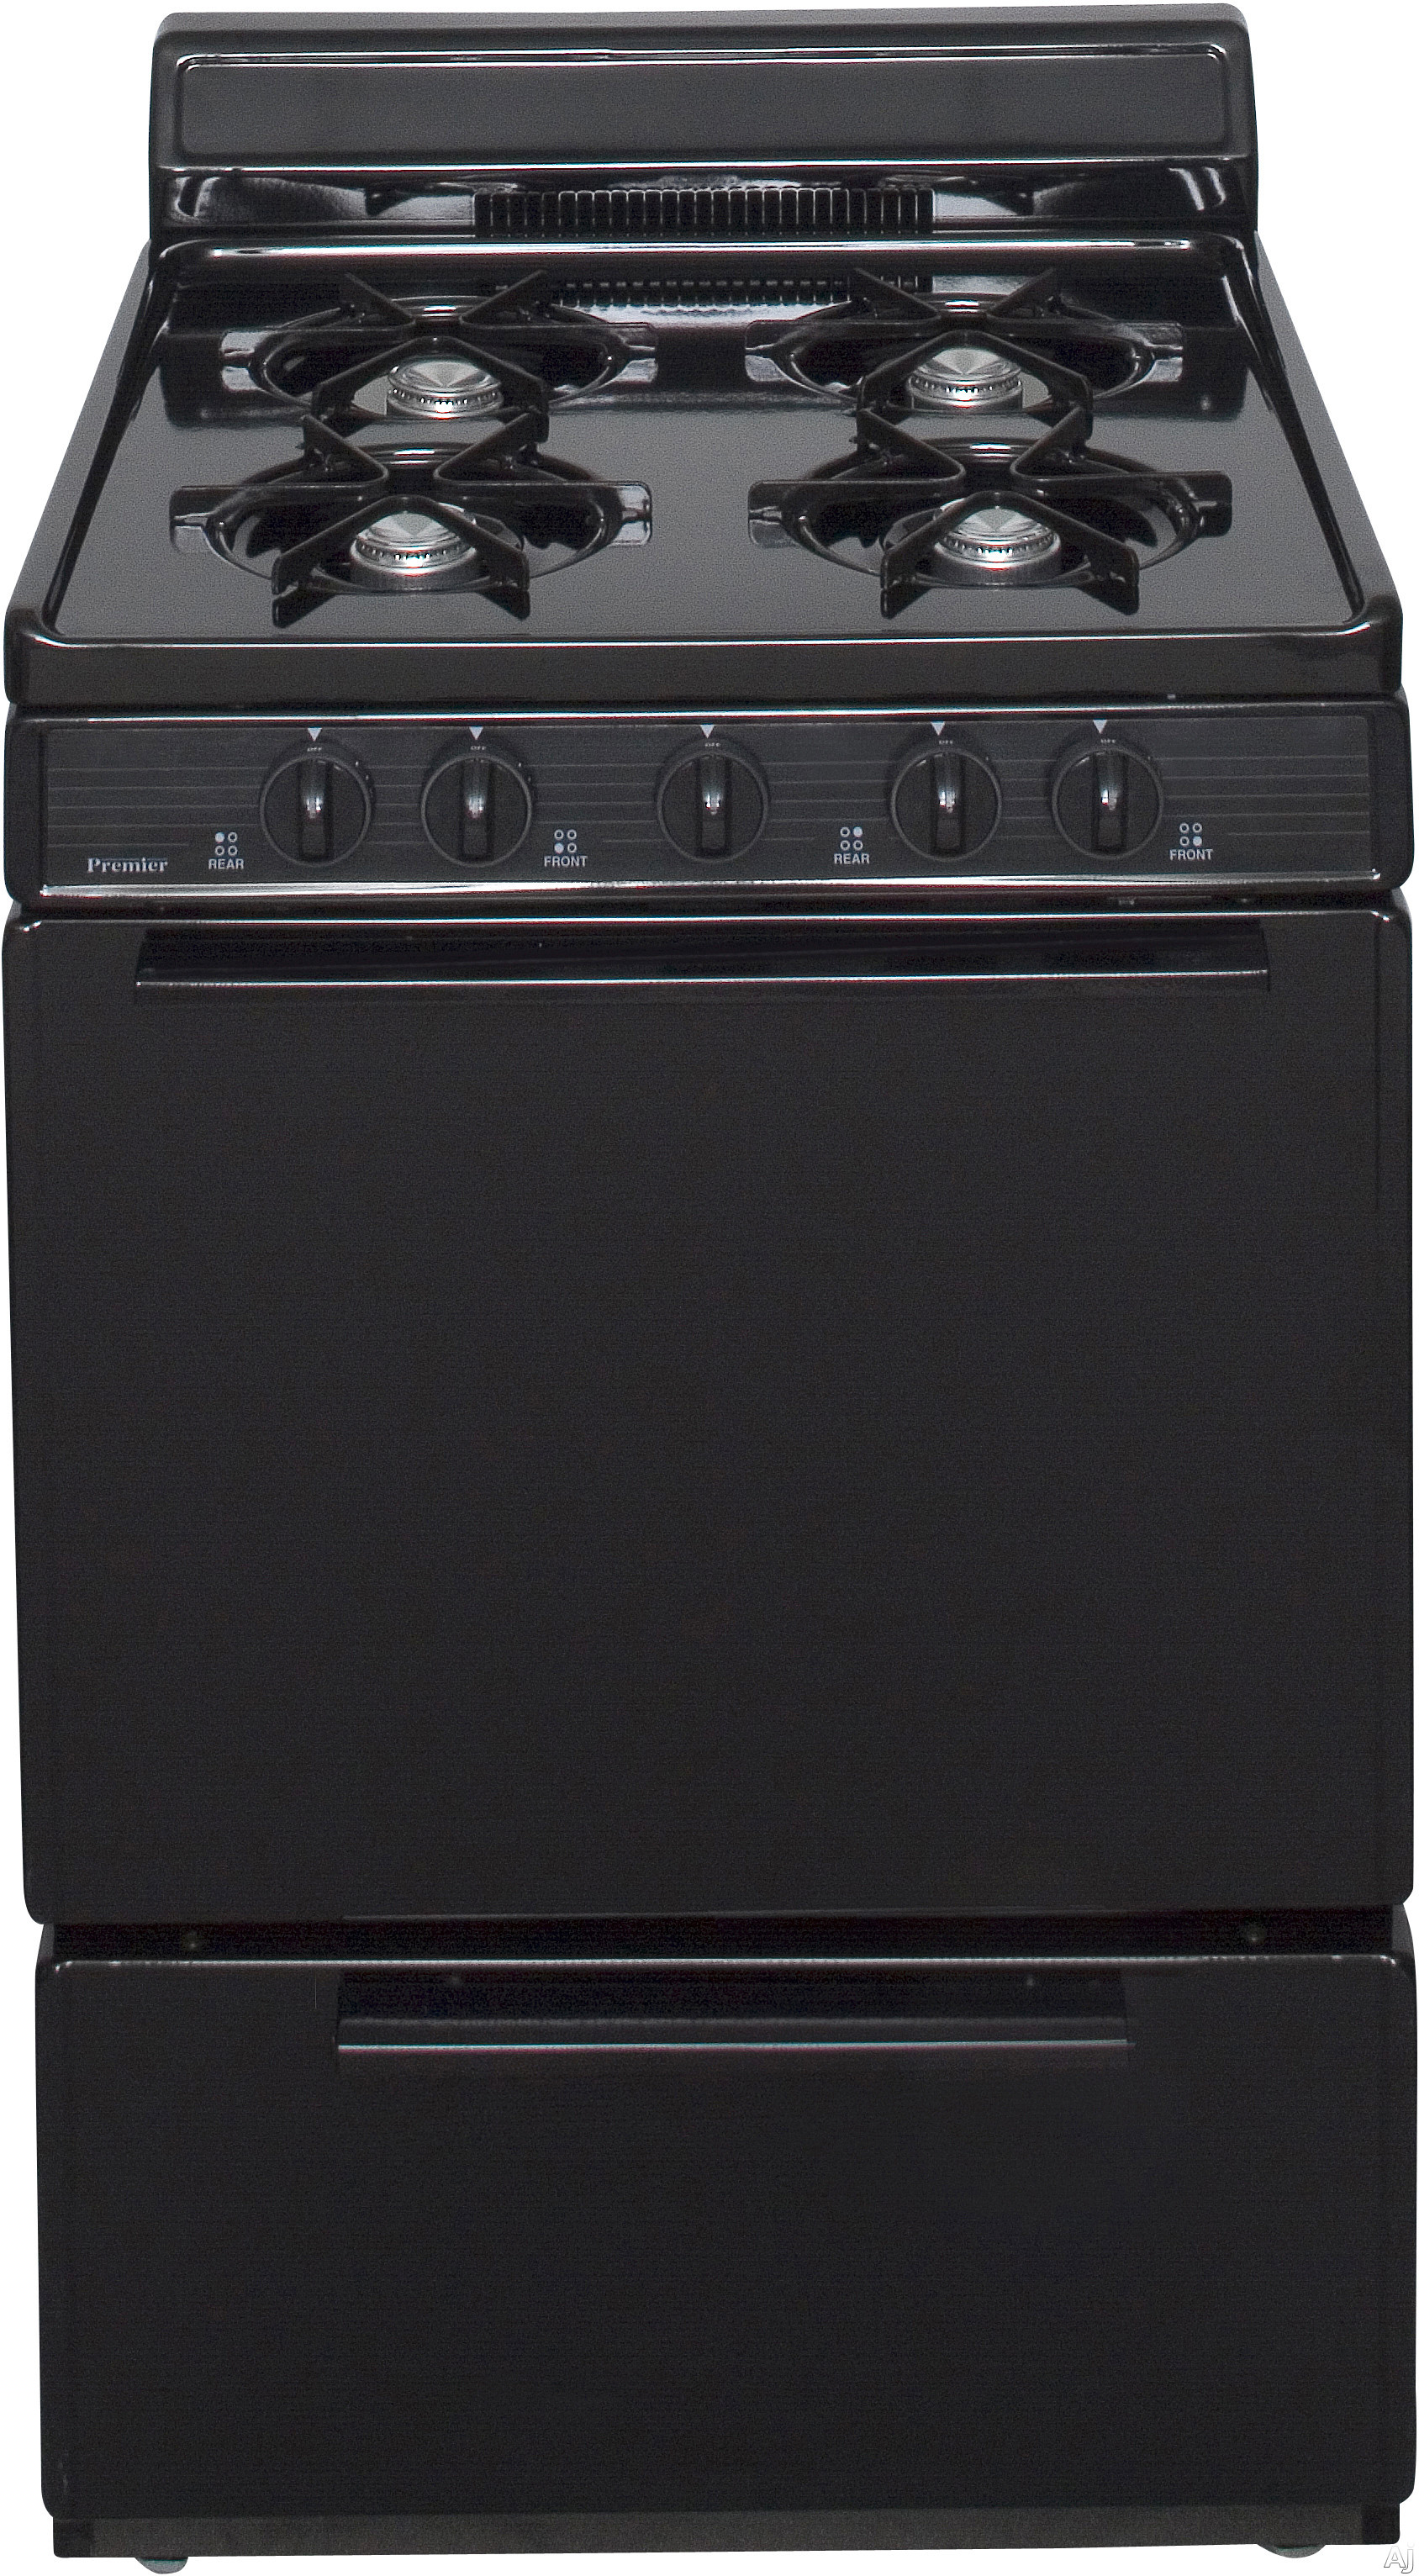 Premier SCK100B 24 Inch Freestanding Gas Range with 4 Open Burners, 3 cu. ft. Manual Clean Oven, Electronic Ignition, Solid Oven Door and 4 Inch Porcelain Backguard: Black on Black